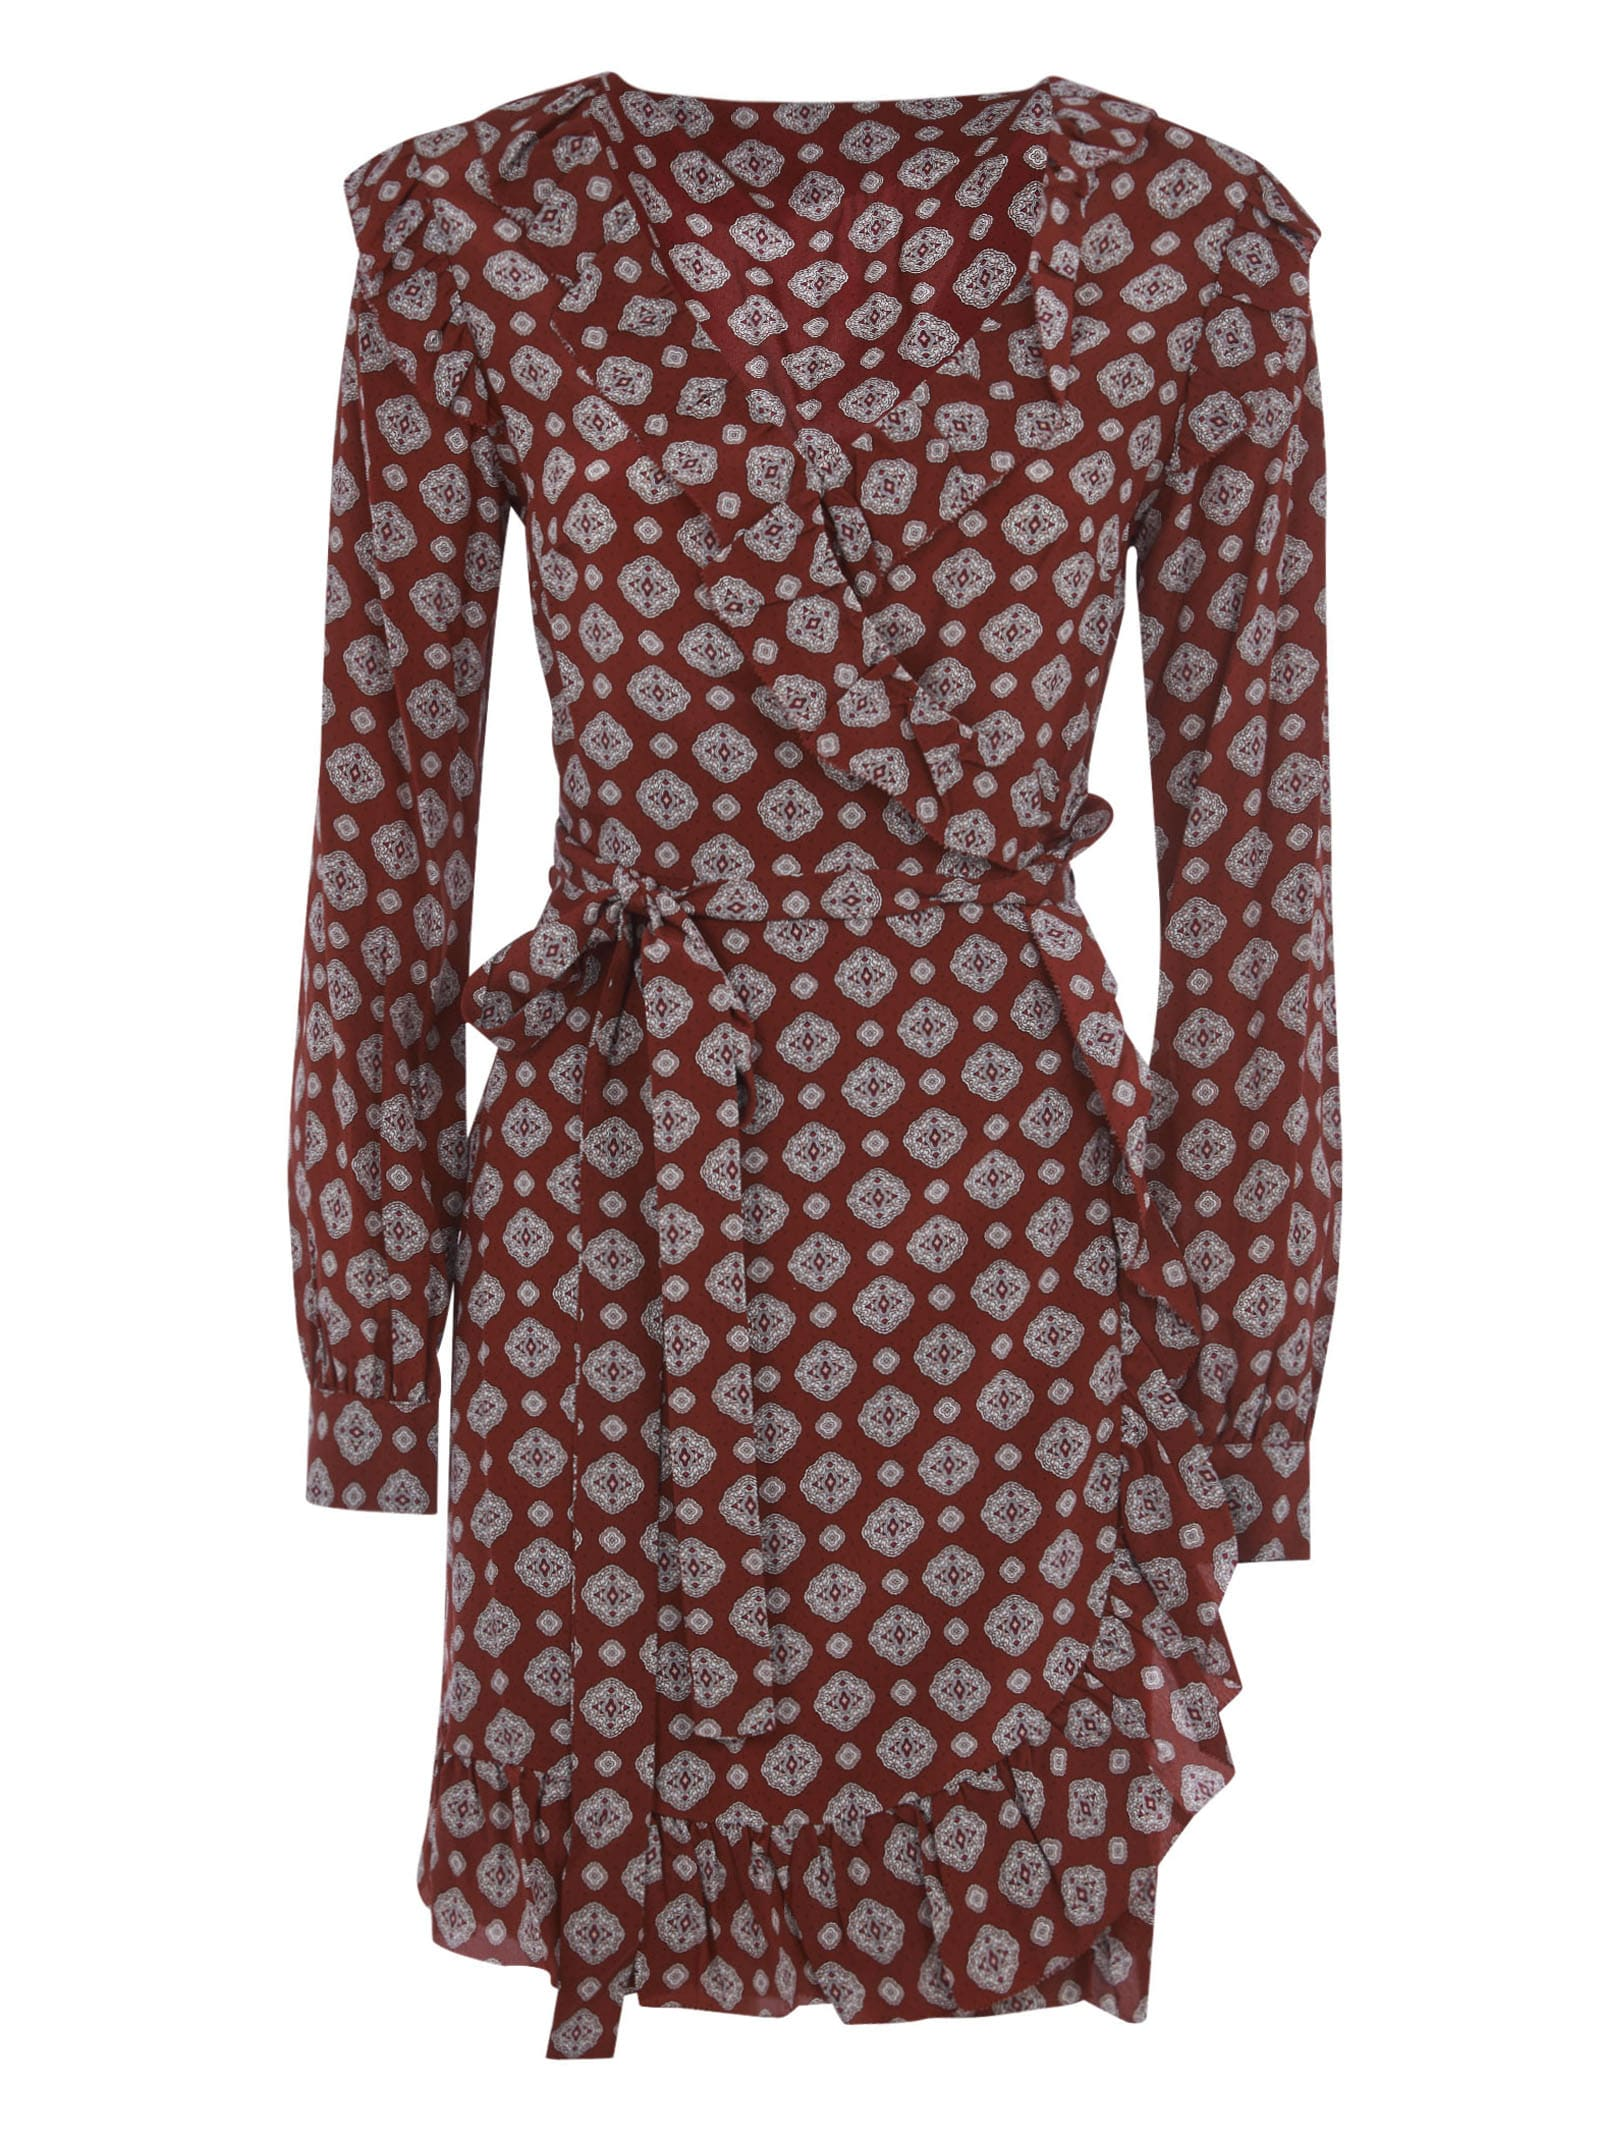 Michael Kors PATTERN PRINT BELTED V-NECK DRESS